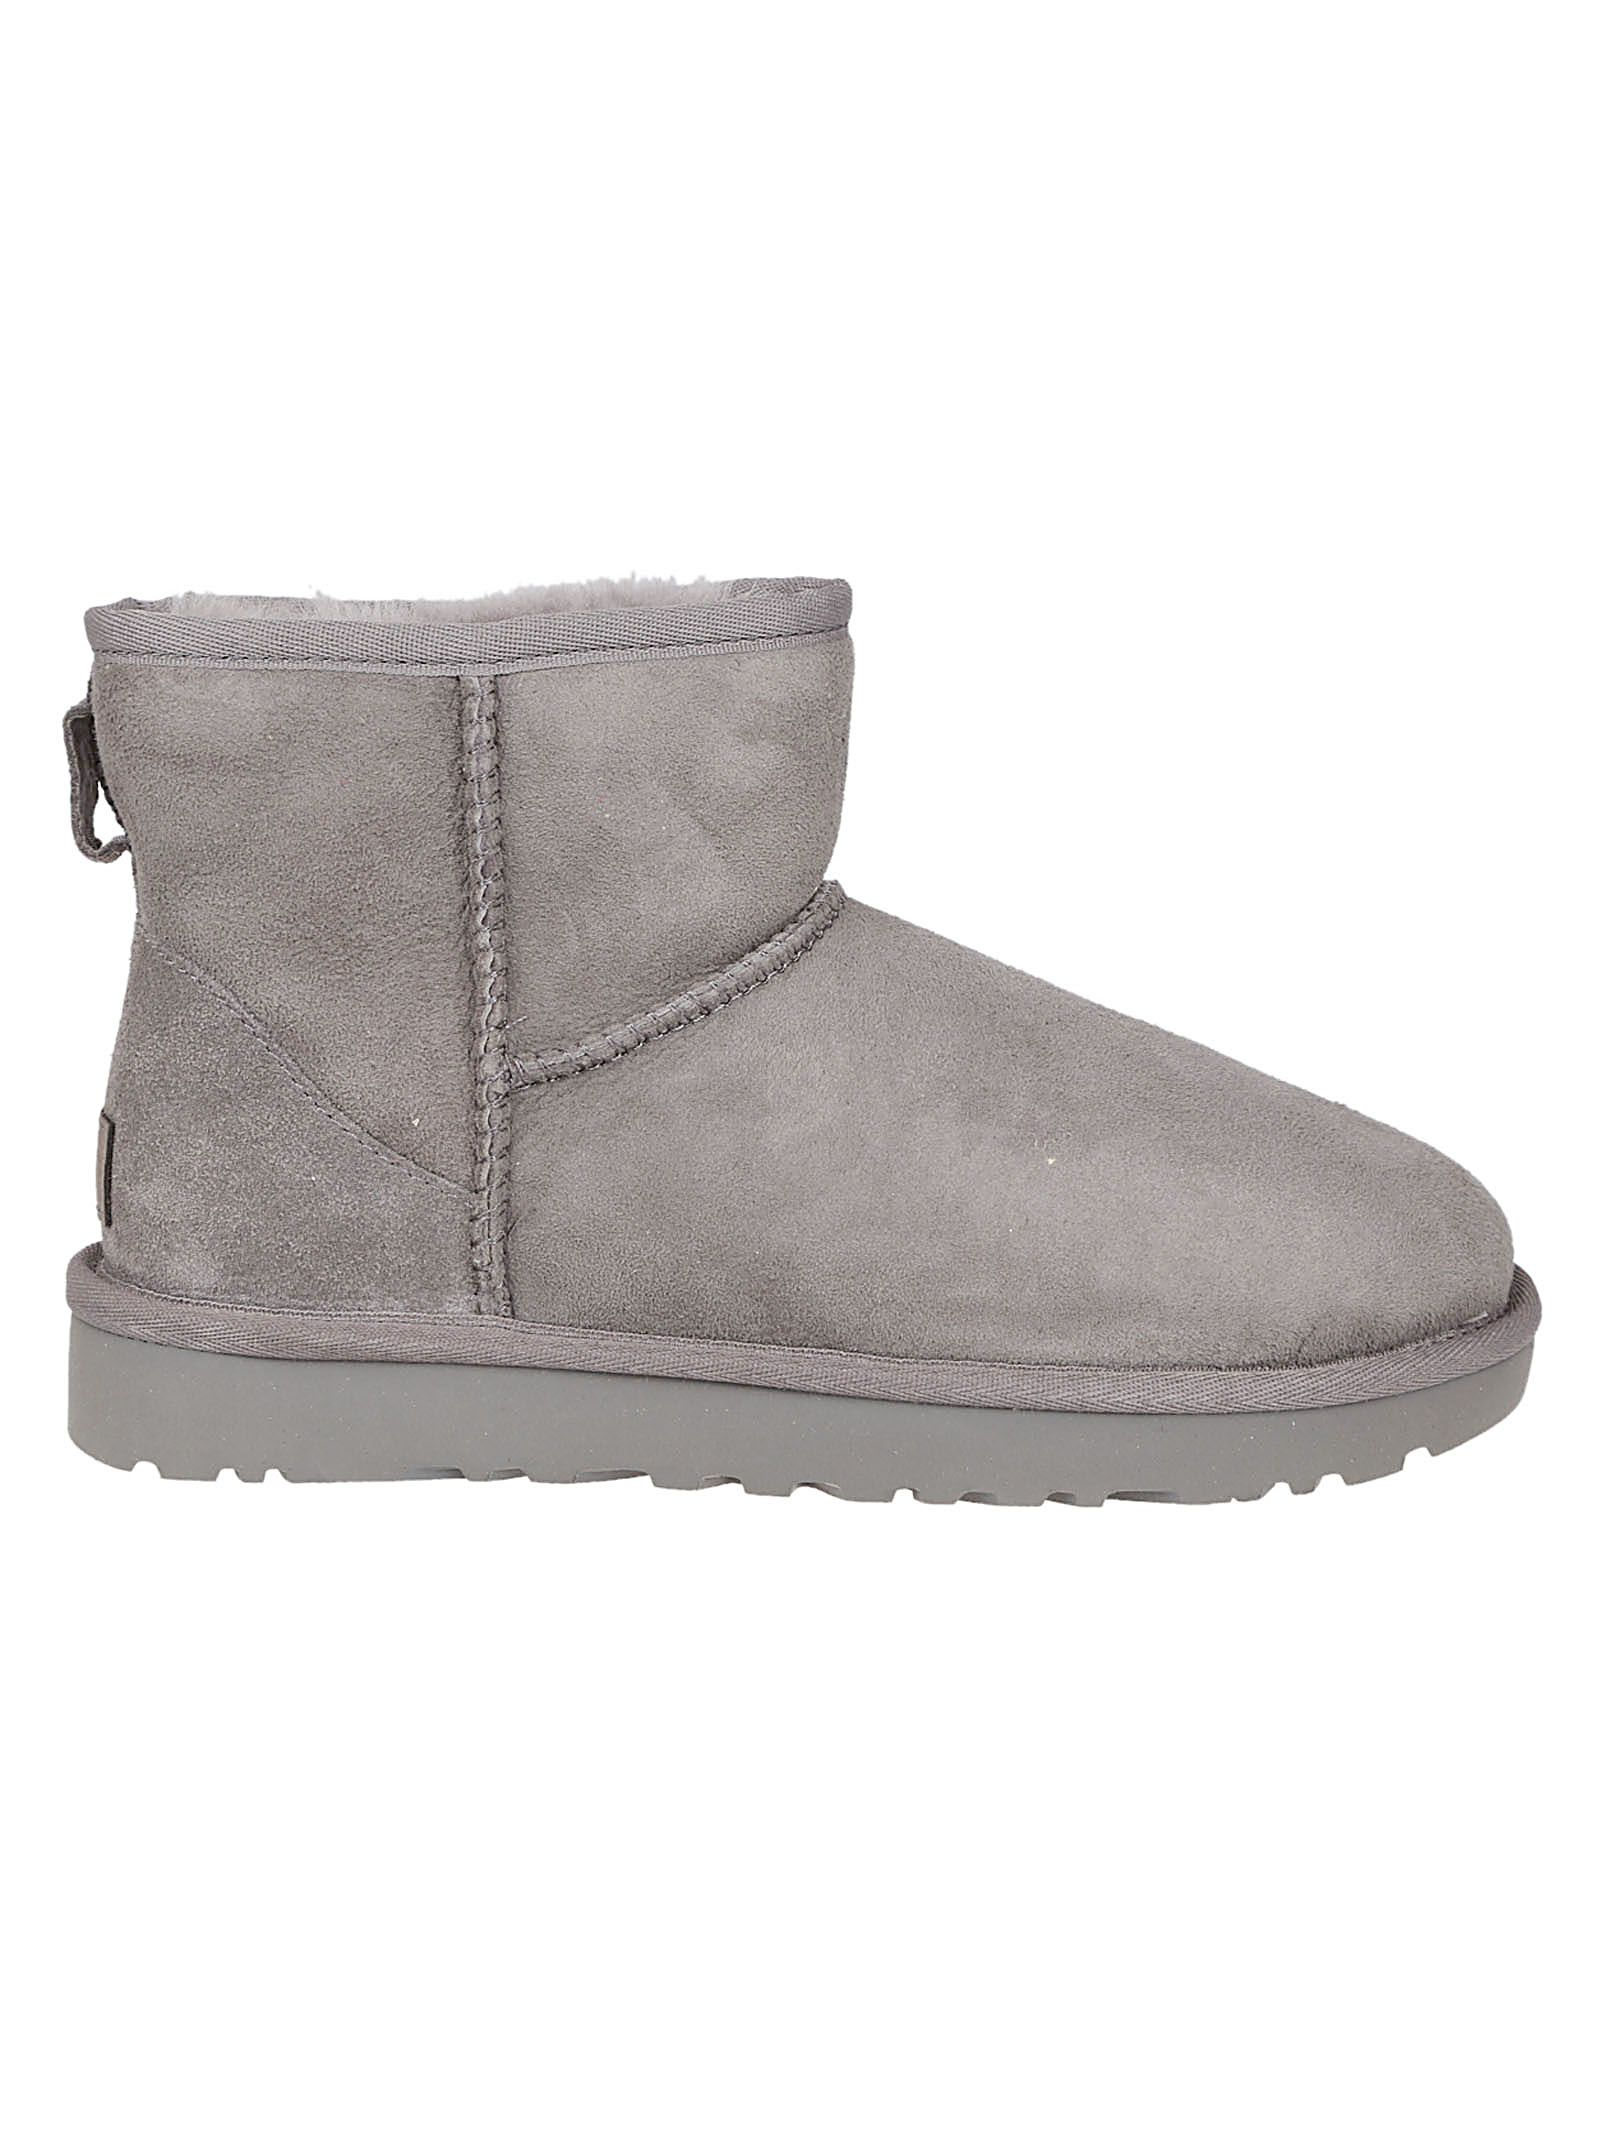 Ugg Mid Ankle Boots